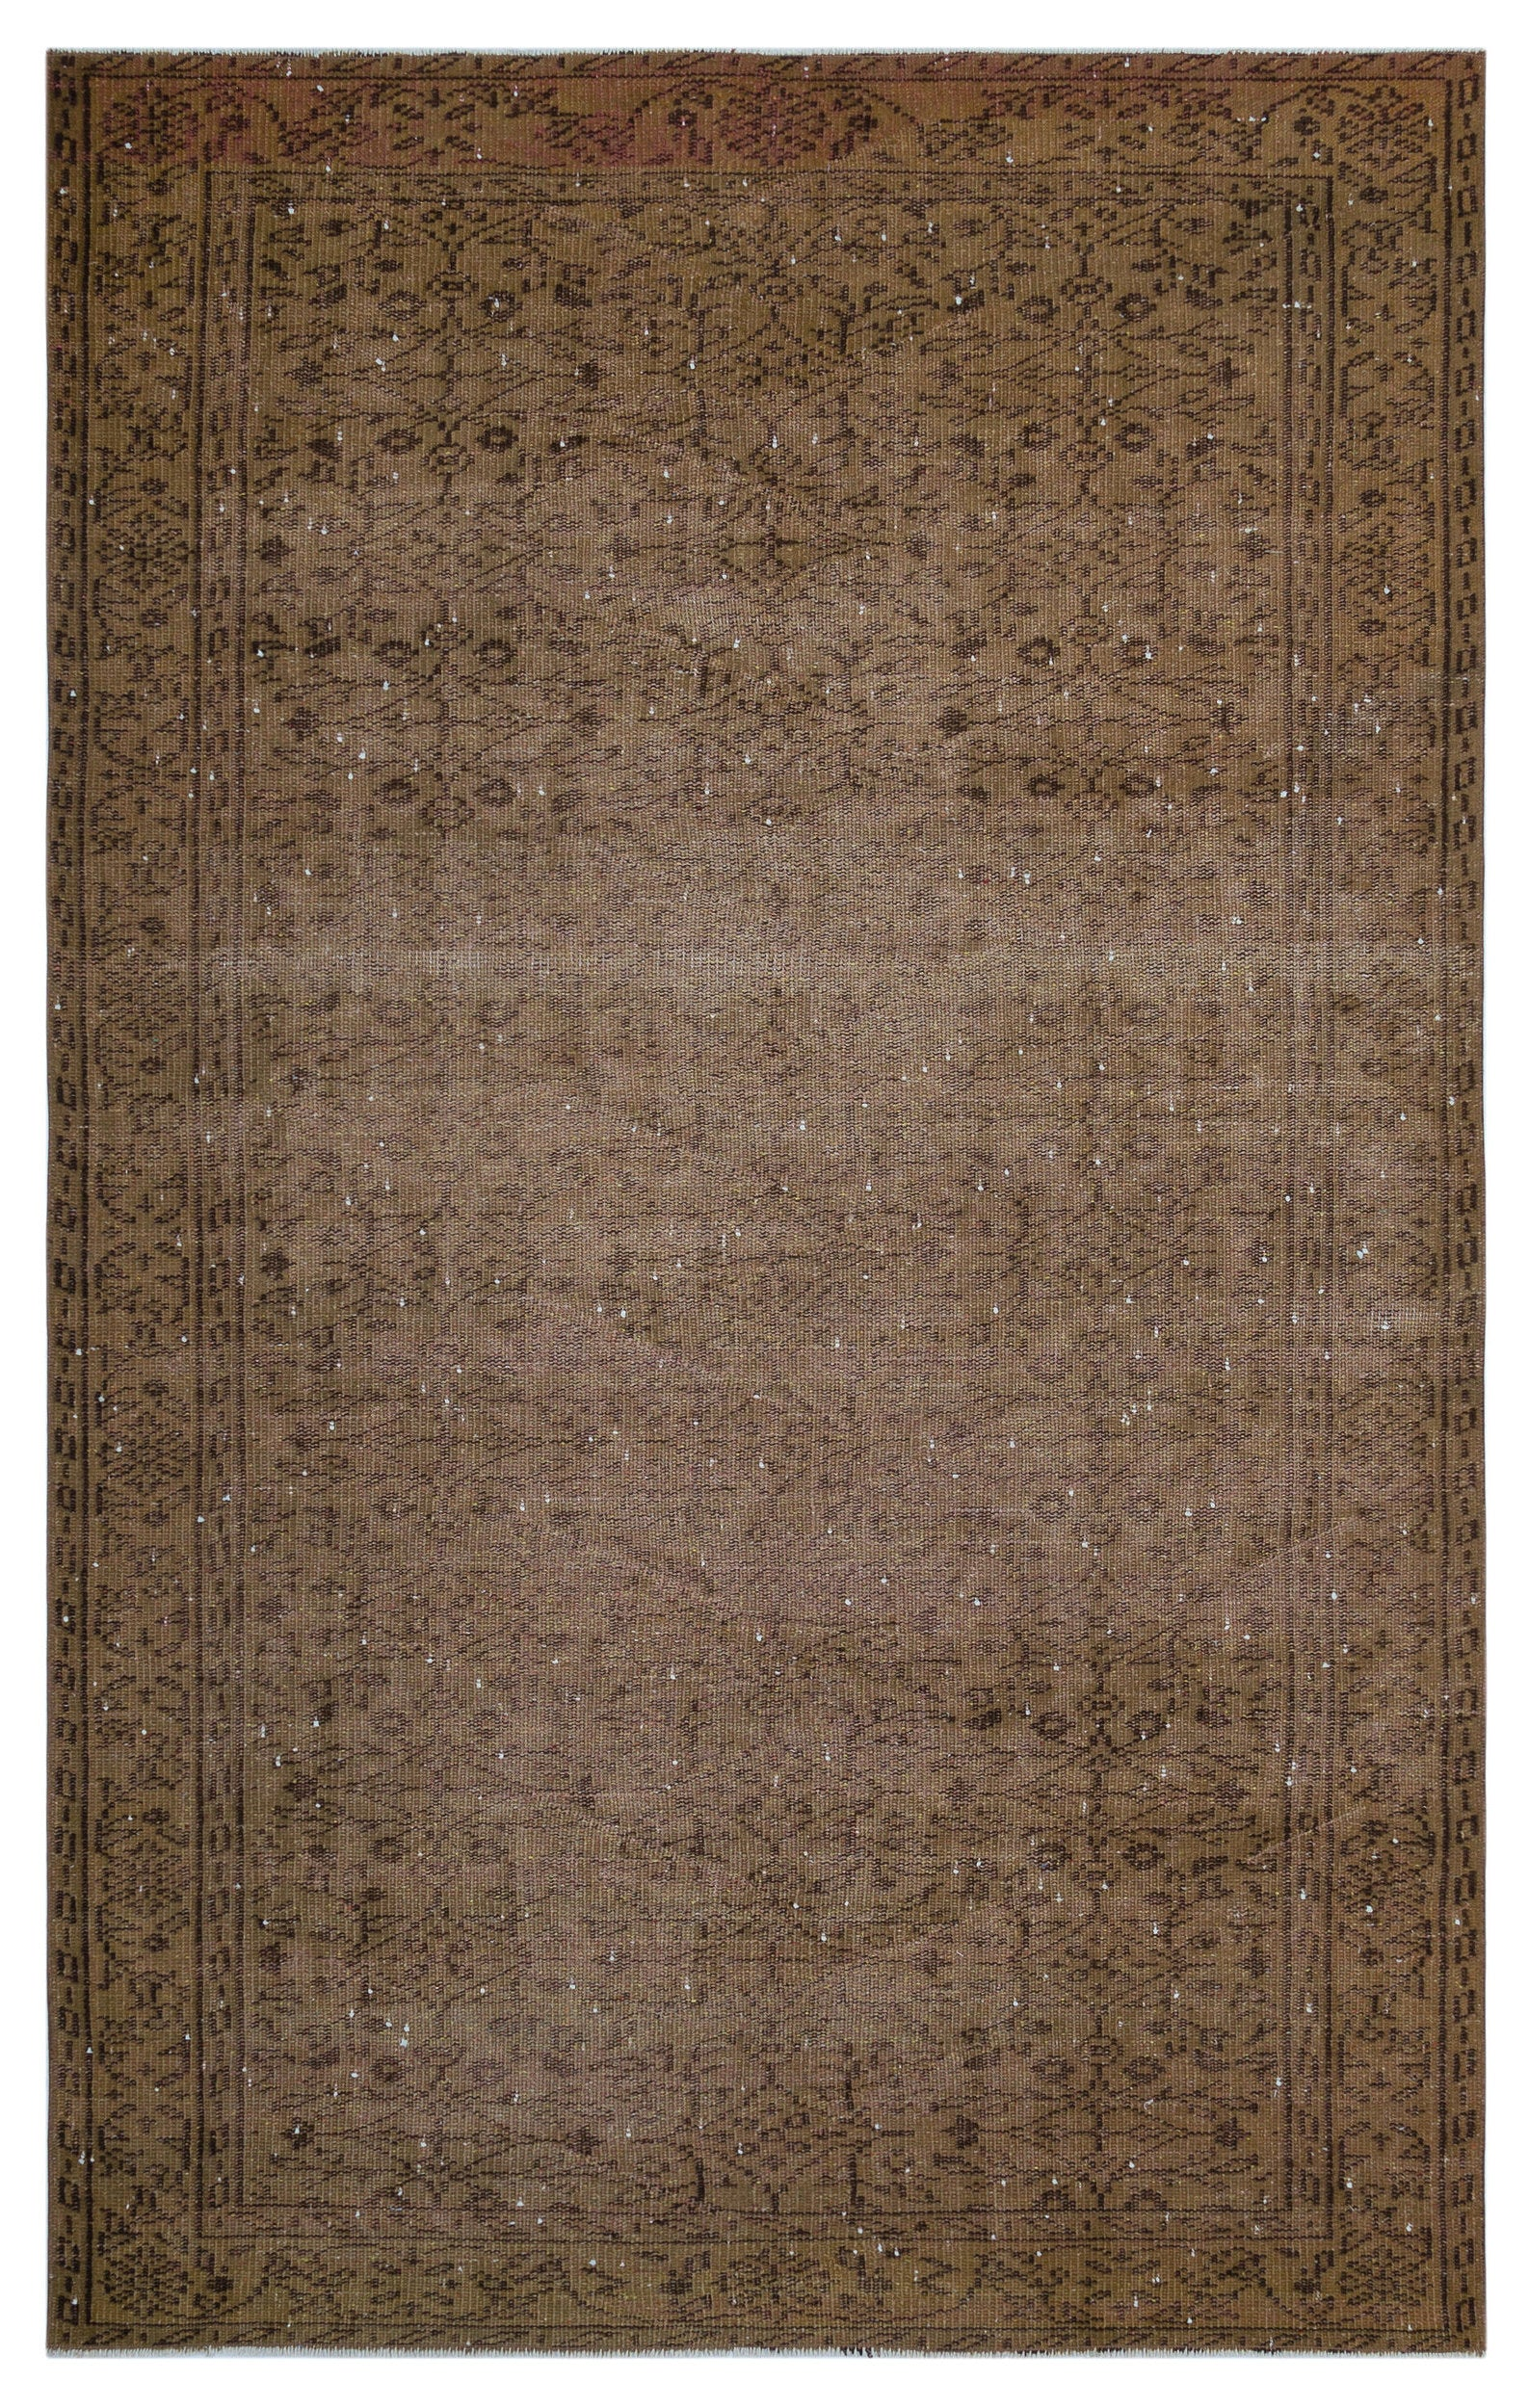 Brown Over Dyed Vintage Rug 5'3'' x 8'6'' ft 160 x 258 cm